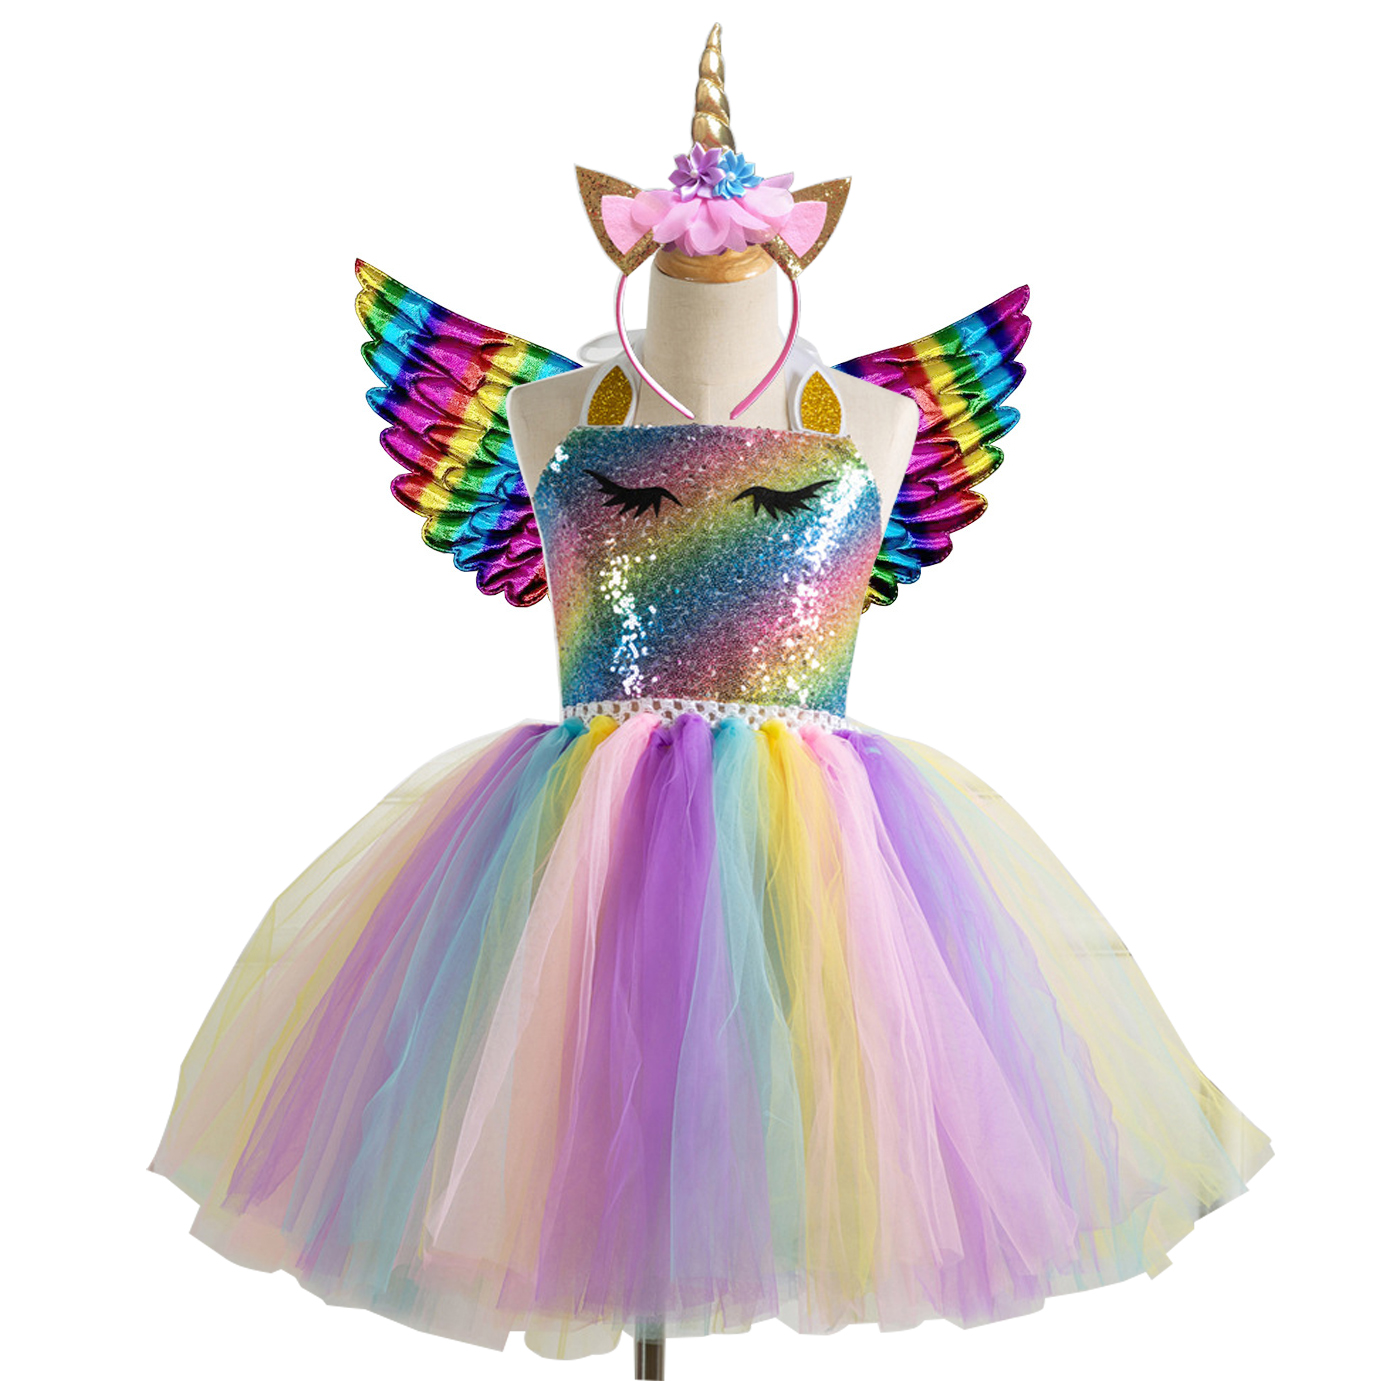 Ladies Sparkle Glitter Rainbow Festival Fancy Dress Costume Outfit Tutu Skirt